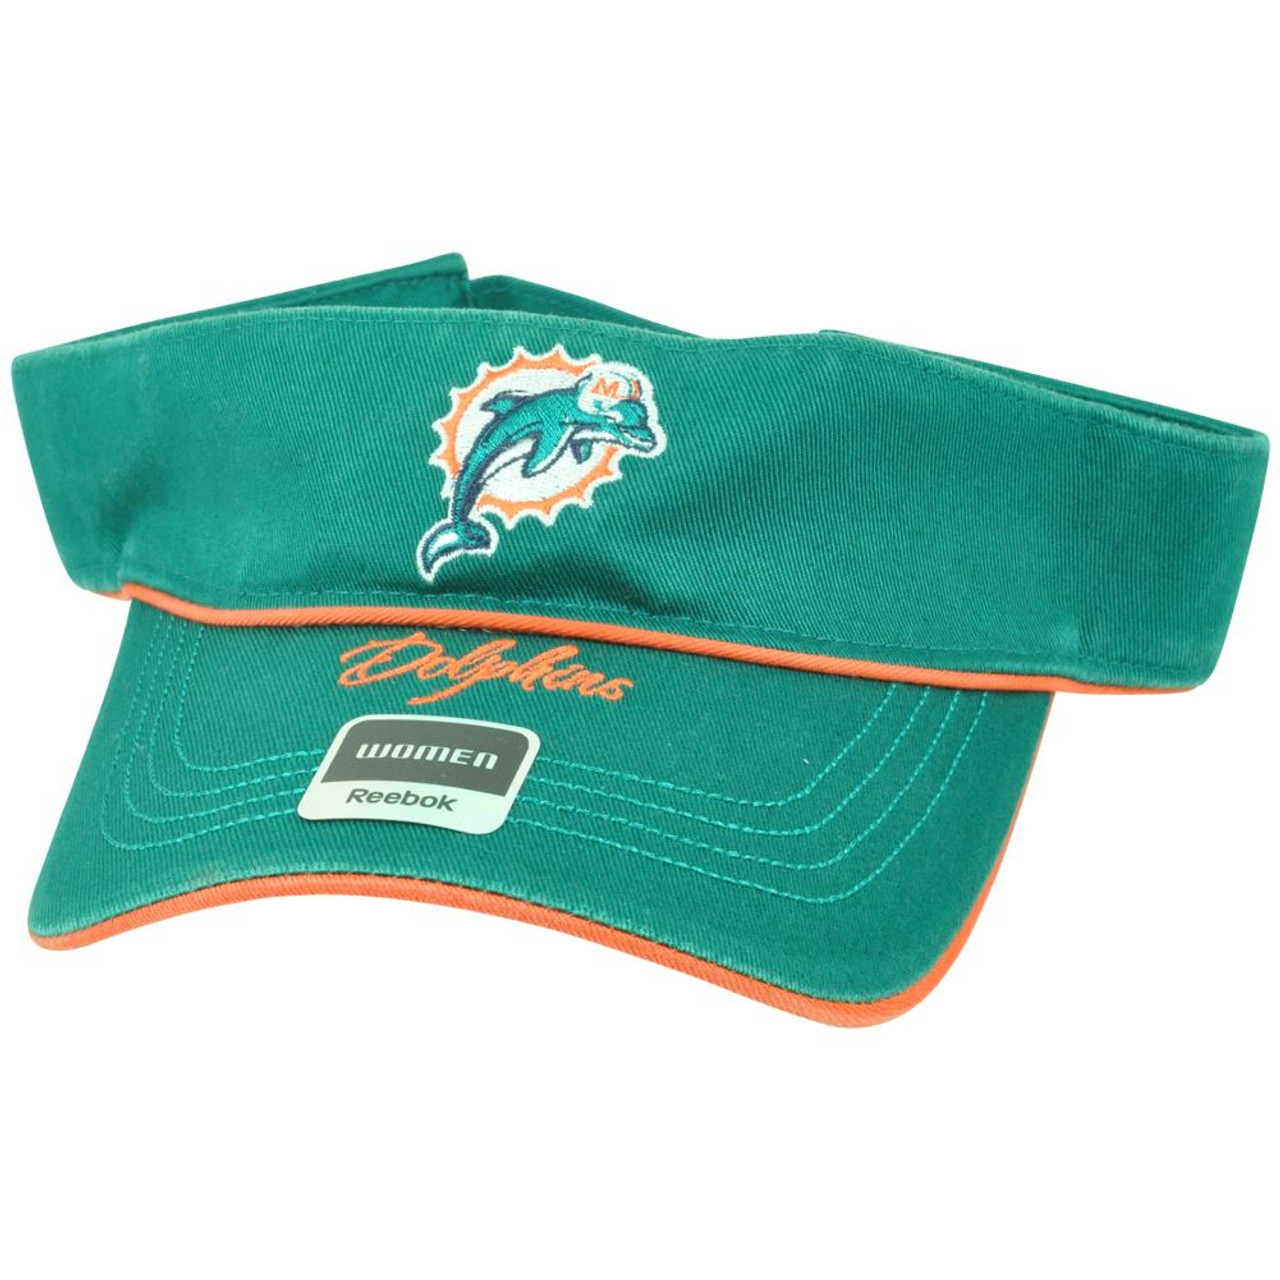 68e007f2 NFL Miami Dolphins Reebok Women Adjustable Velcro Script Green Visor Hat  DV1021